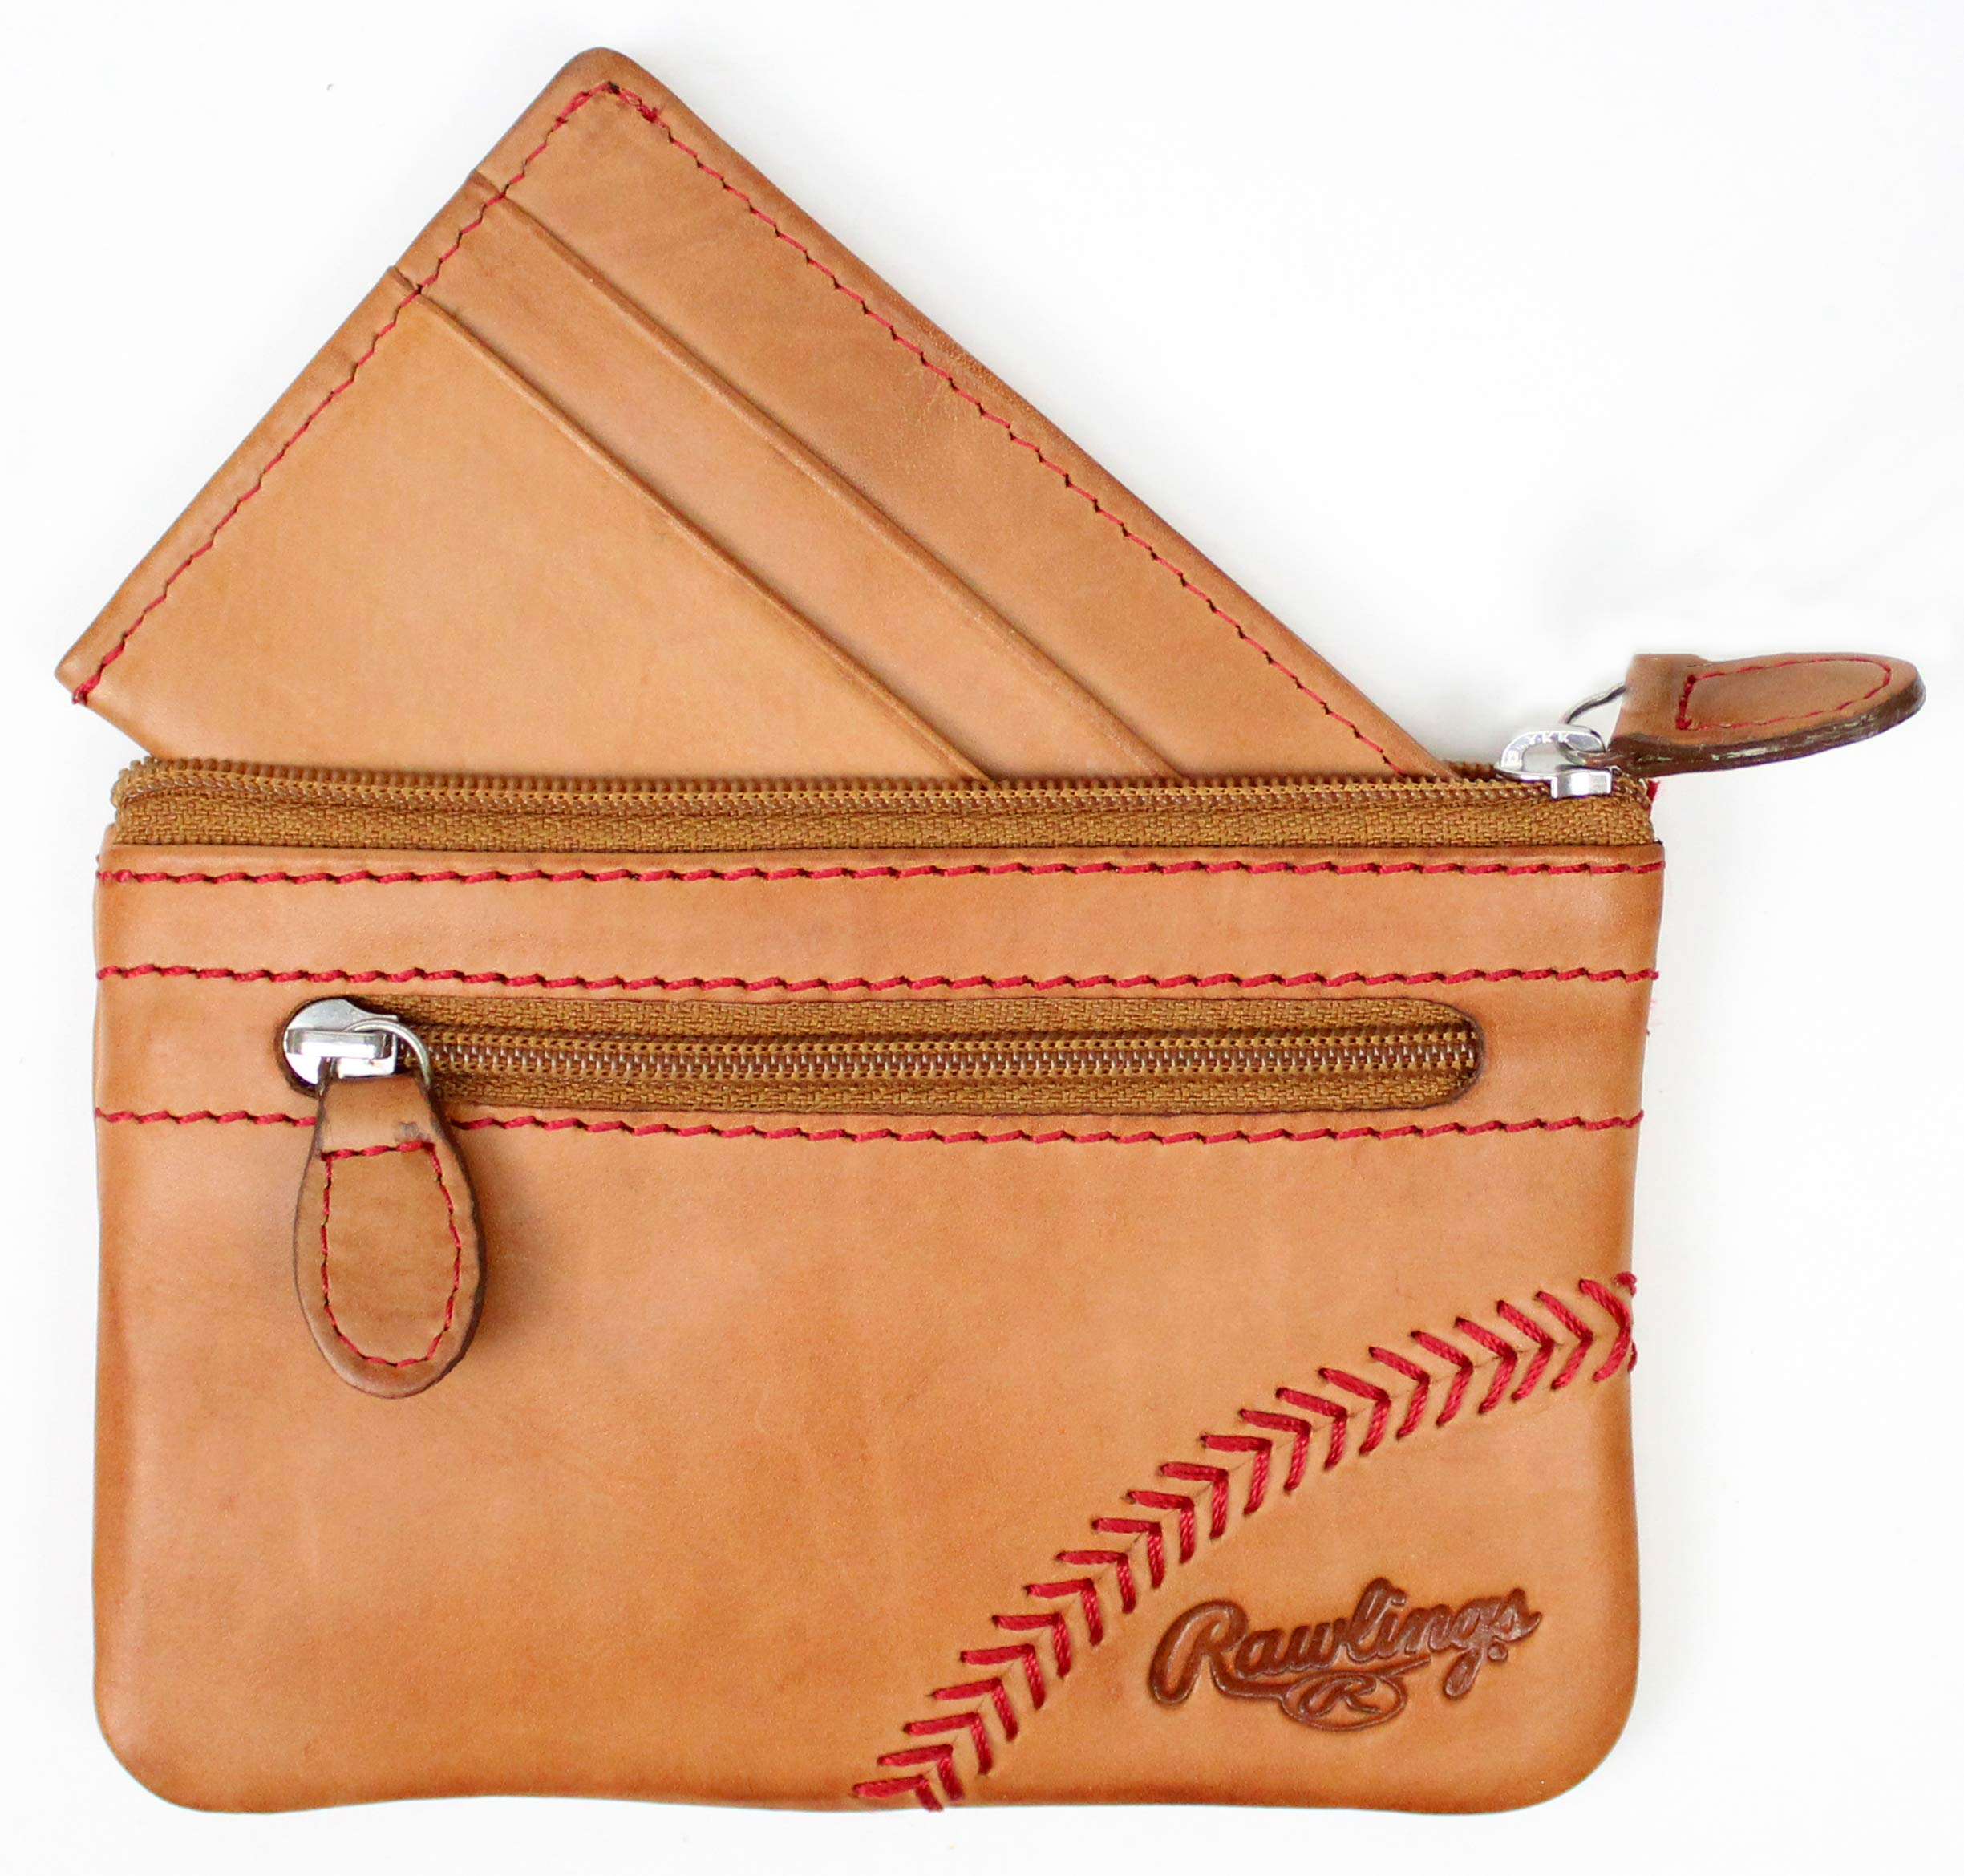 Rawlings Baseball Stitch Pouch With Credit Card Insert (Tan) by Rawlings